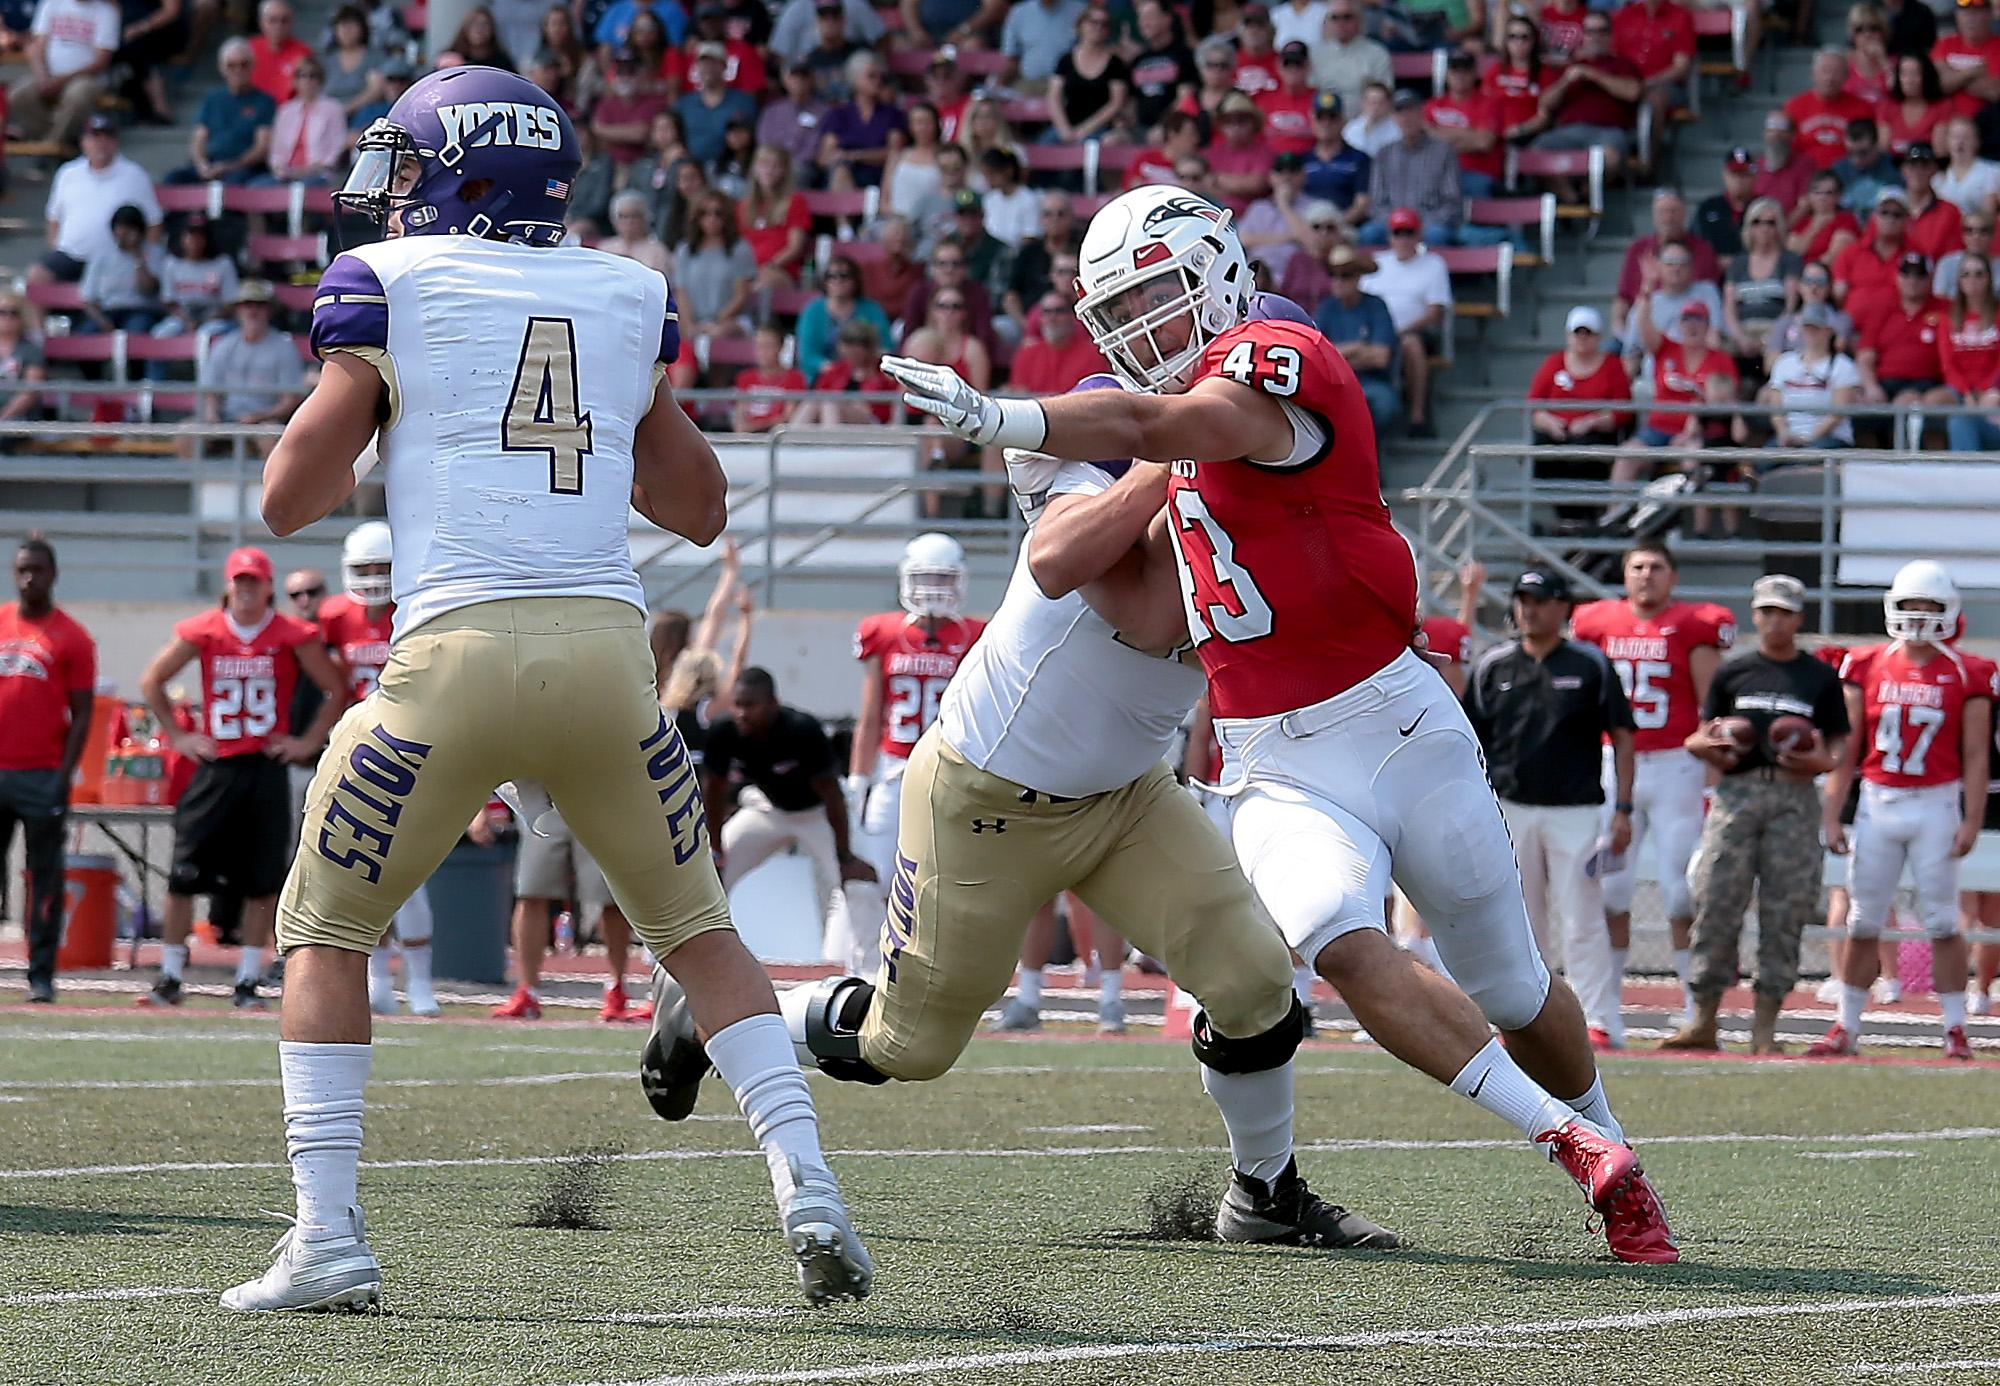 Larry Stauth Jr./For the Daily Tidings<br>Southern Oregon University senior defensive end Sean Rogers races after College of Idaho quarterback Darius-James Peterson at Raider Stadium on Saturday.